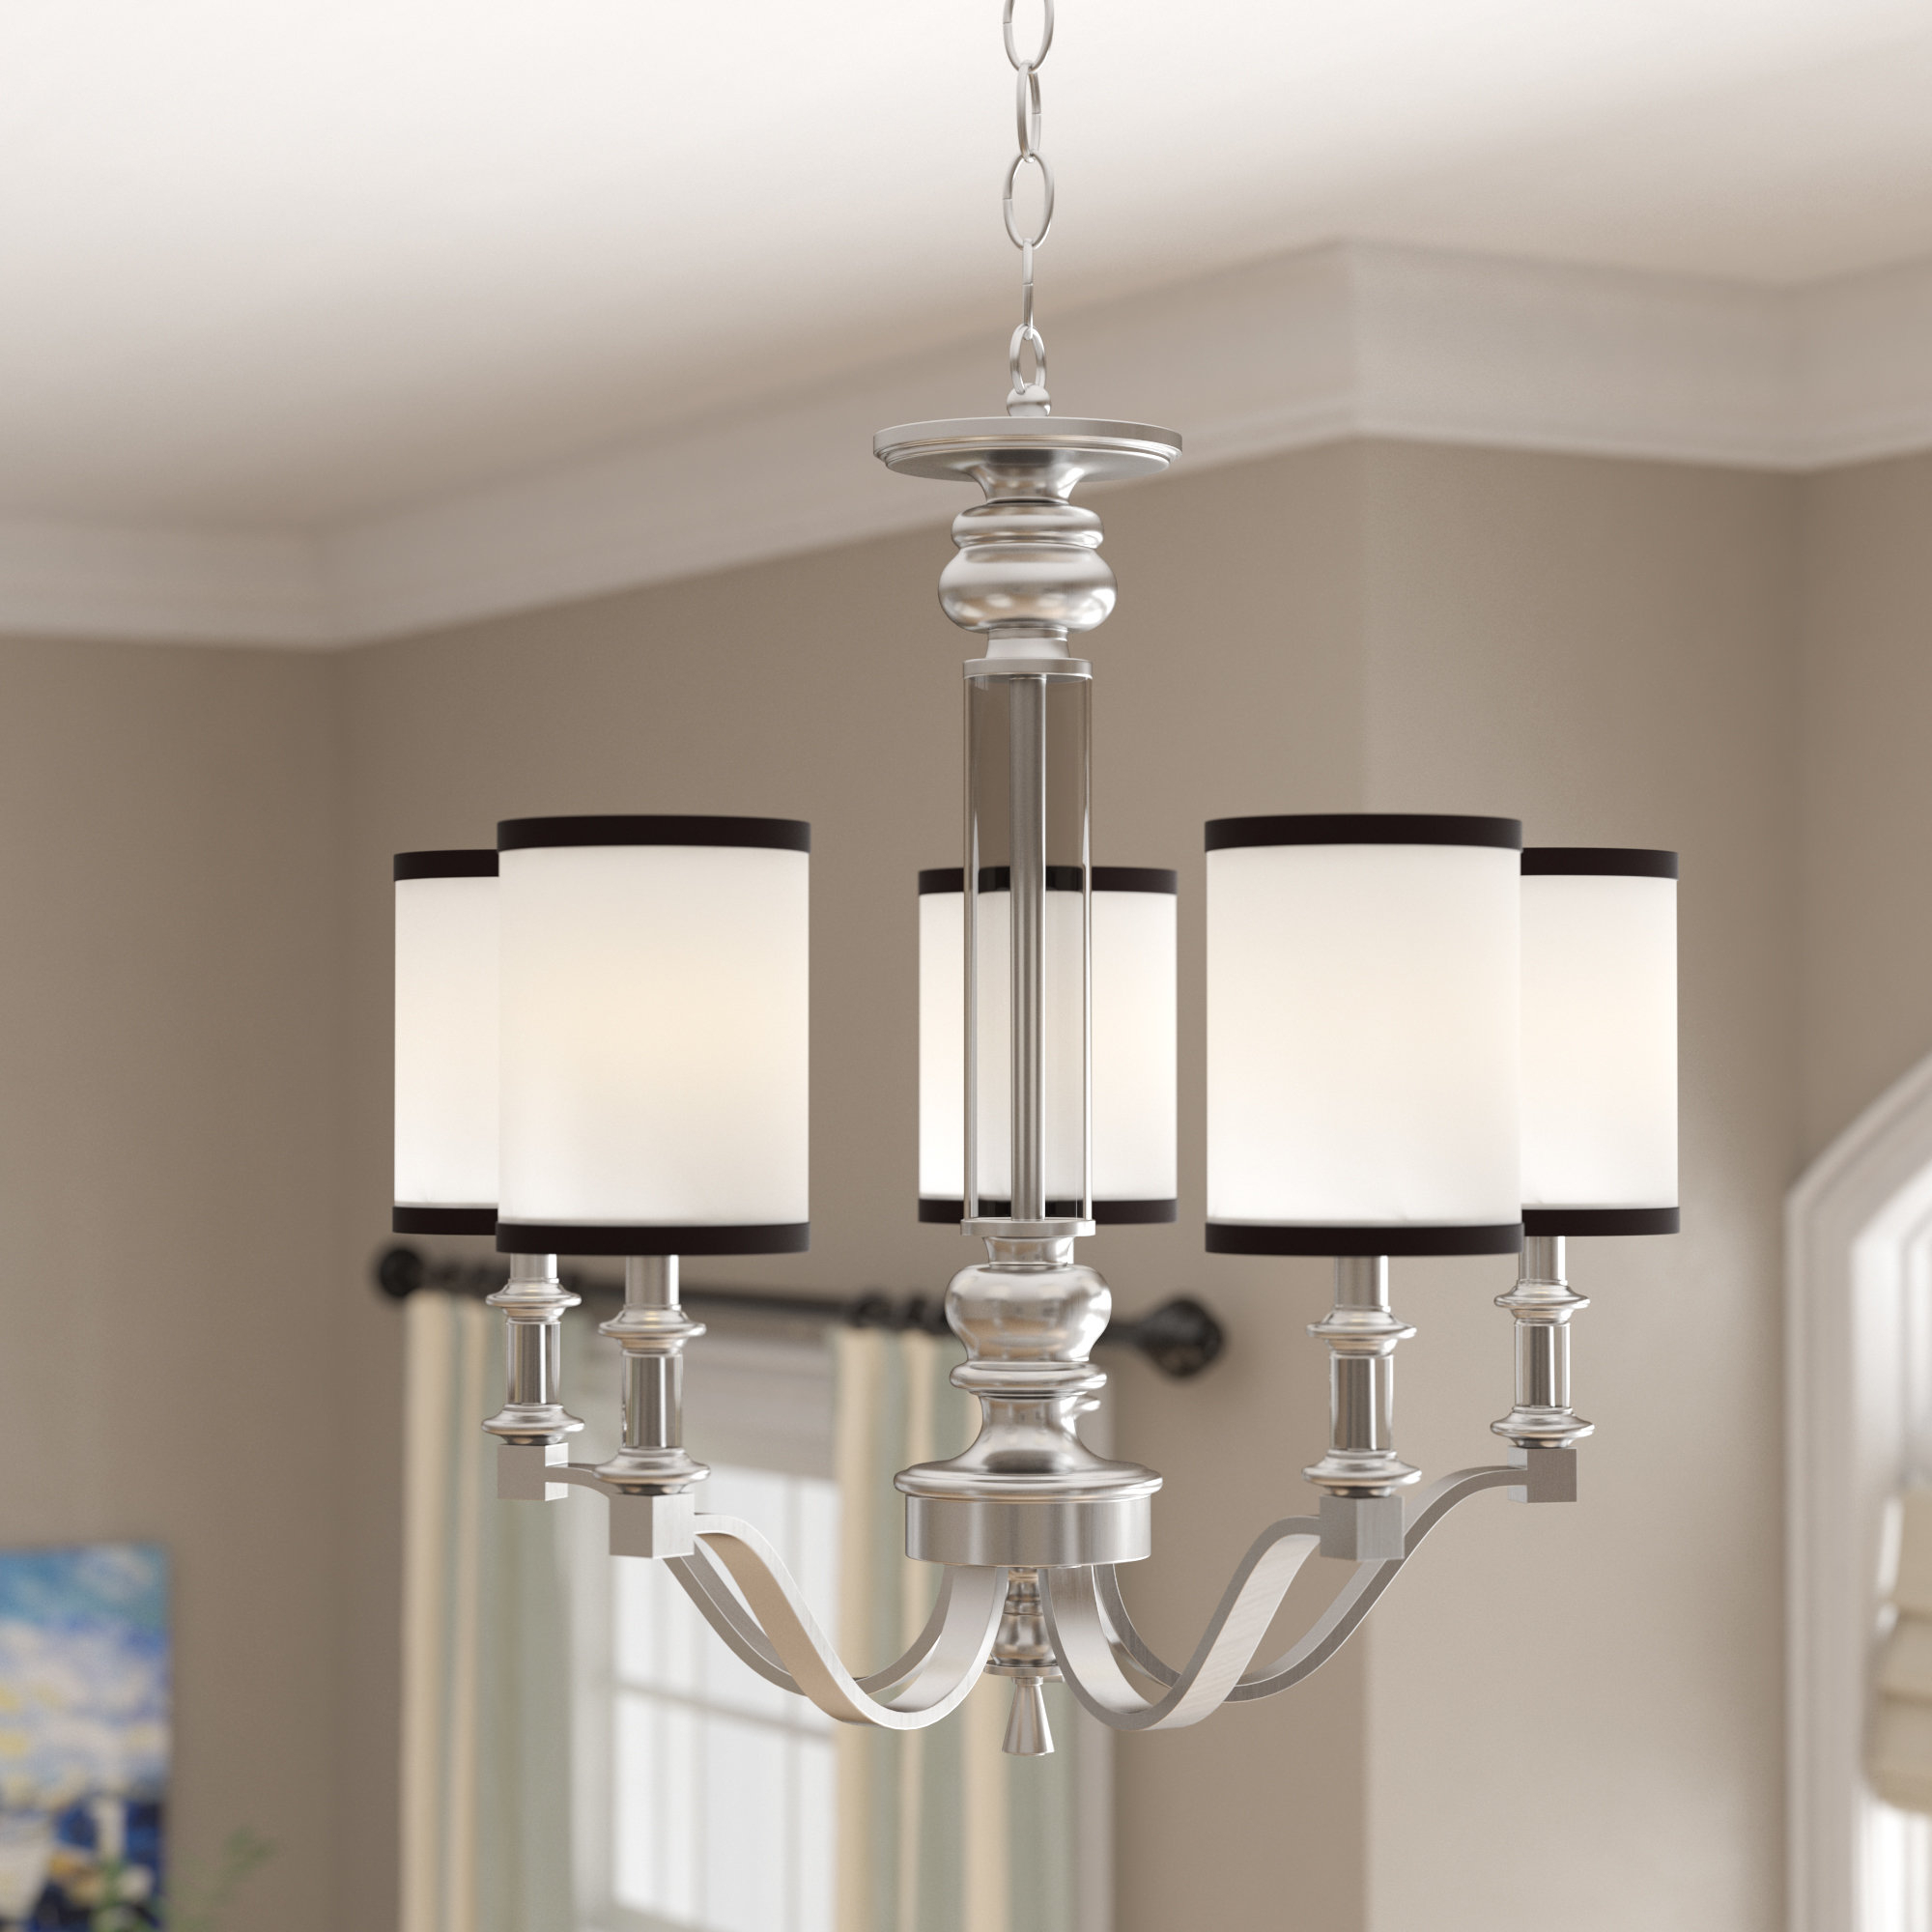 Crofoot 5 Light Shaded Chandeliers Throughout Most Up To Date Breakwater Bay Pfeffer 5 Light Shaded Chandelier & Reviews (View 7 of 20)